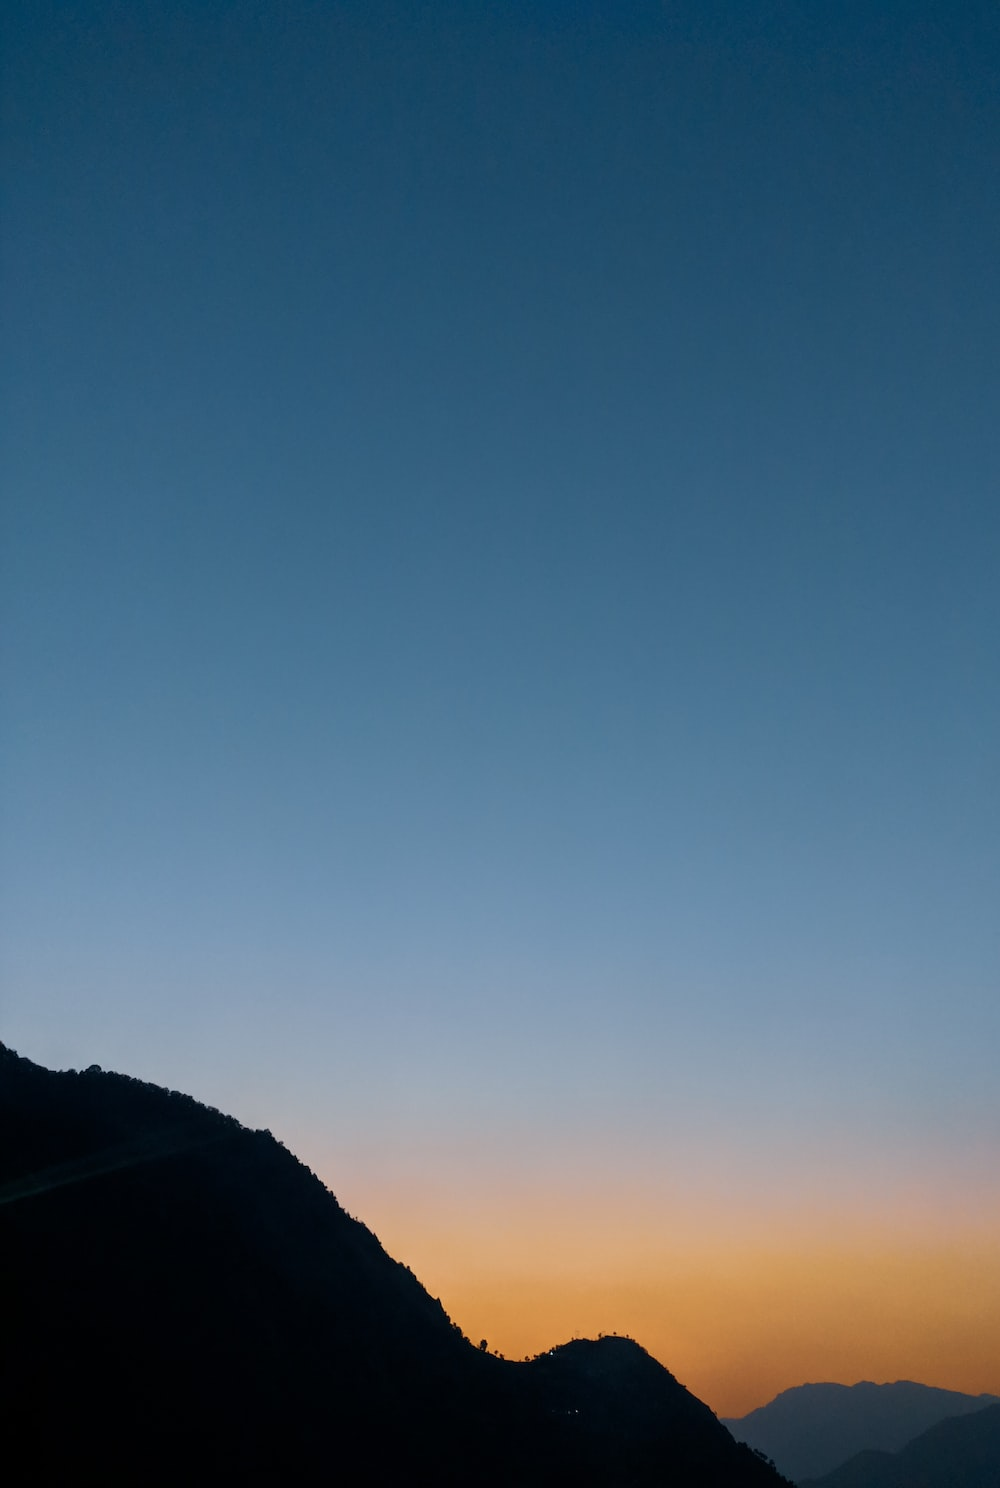 silhouette of mountian